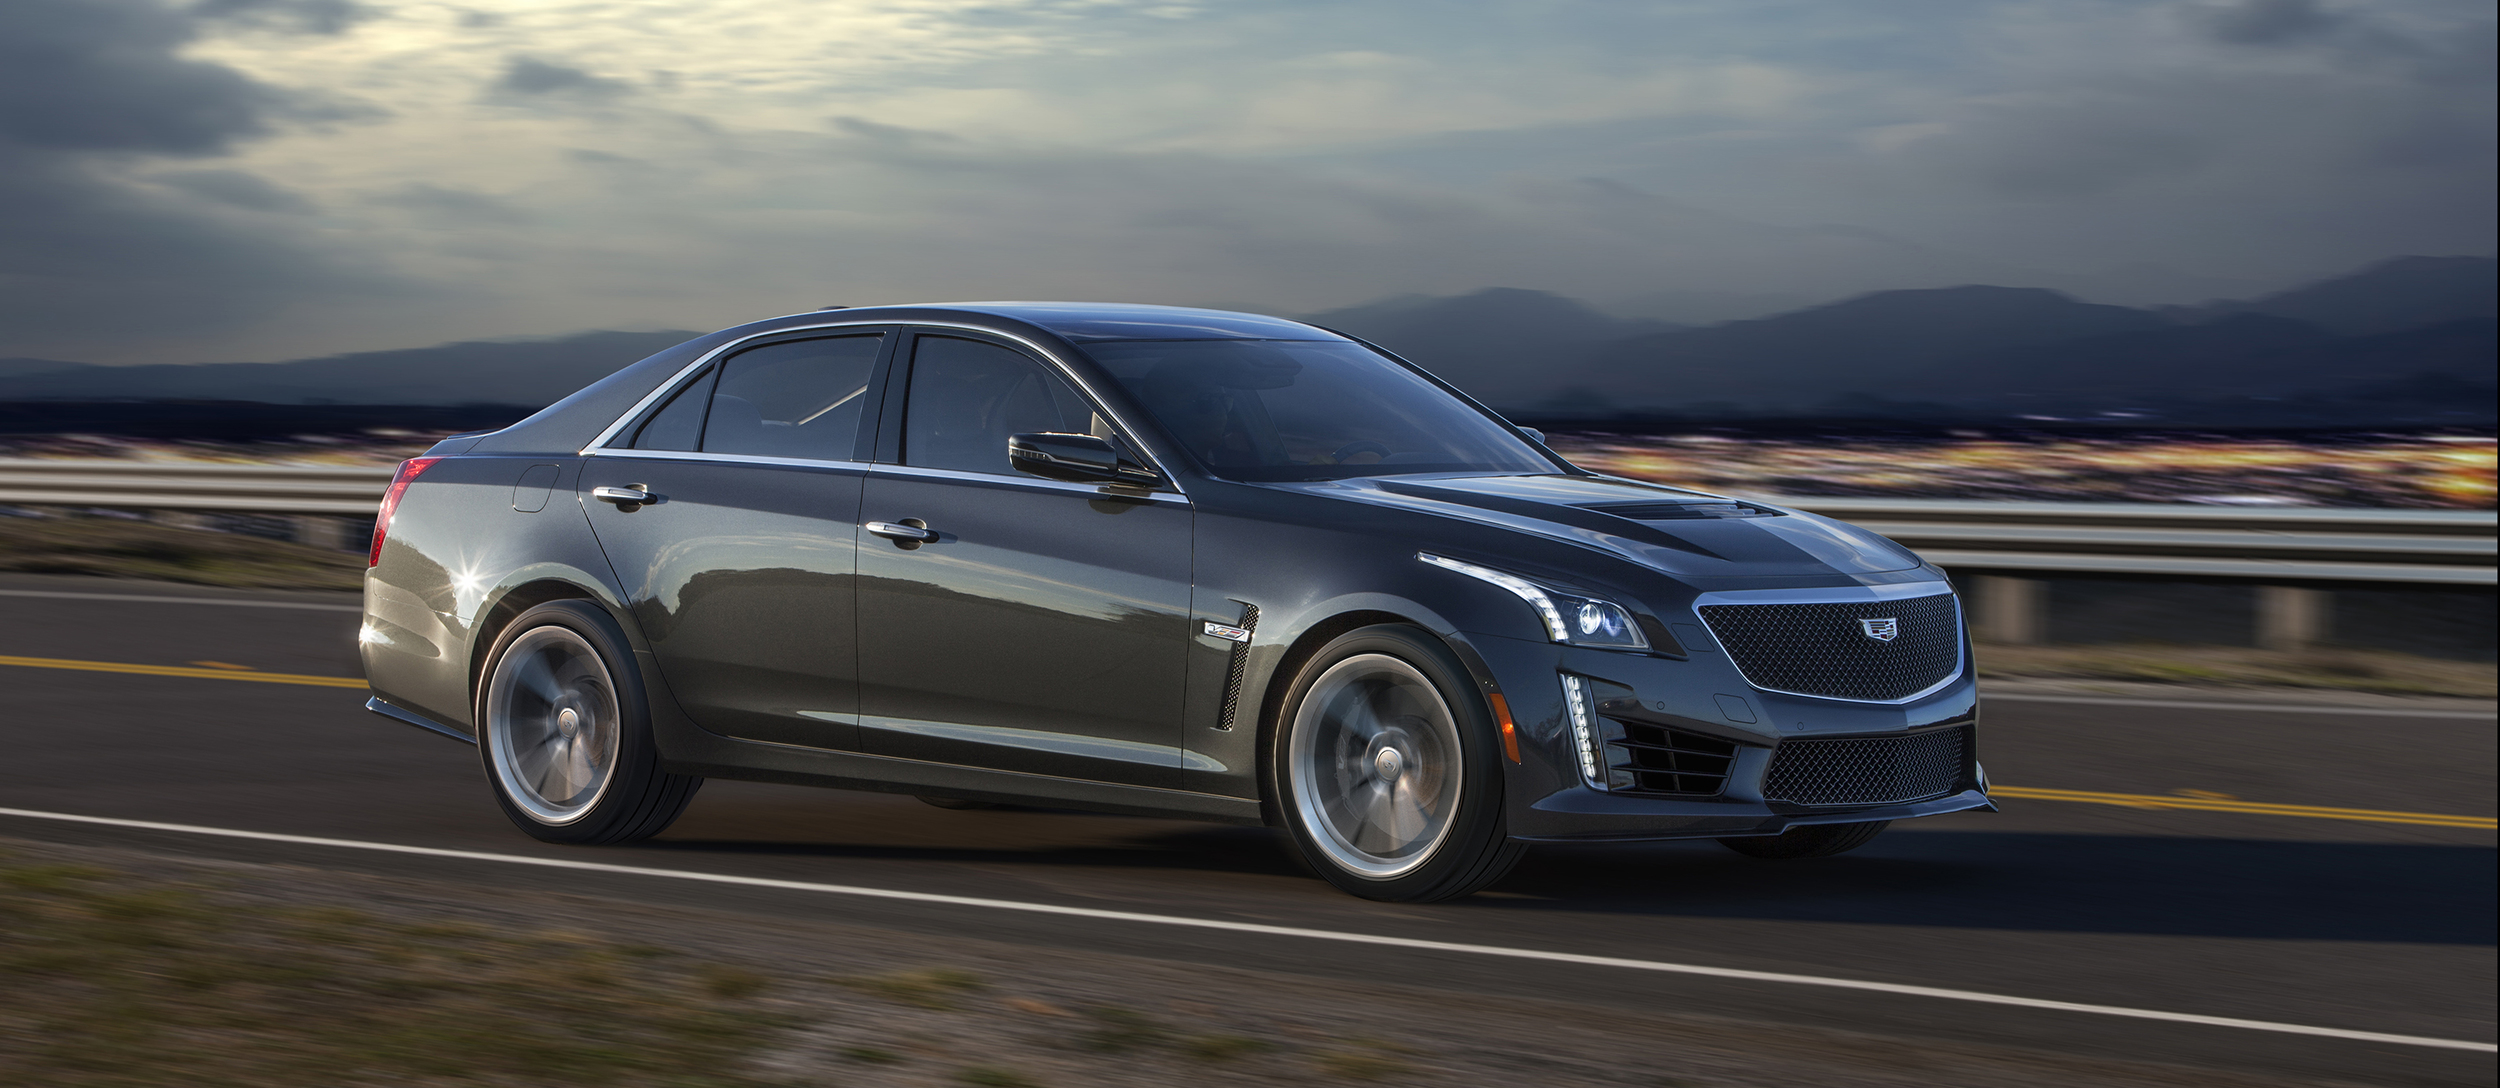 What Are Dts >> cadillac dts 2016 pics - Auto-Database.com